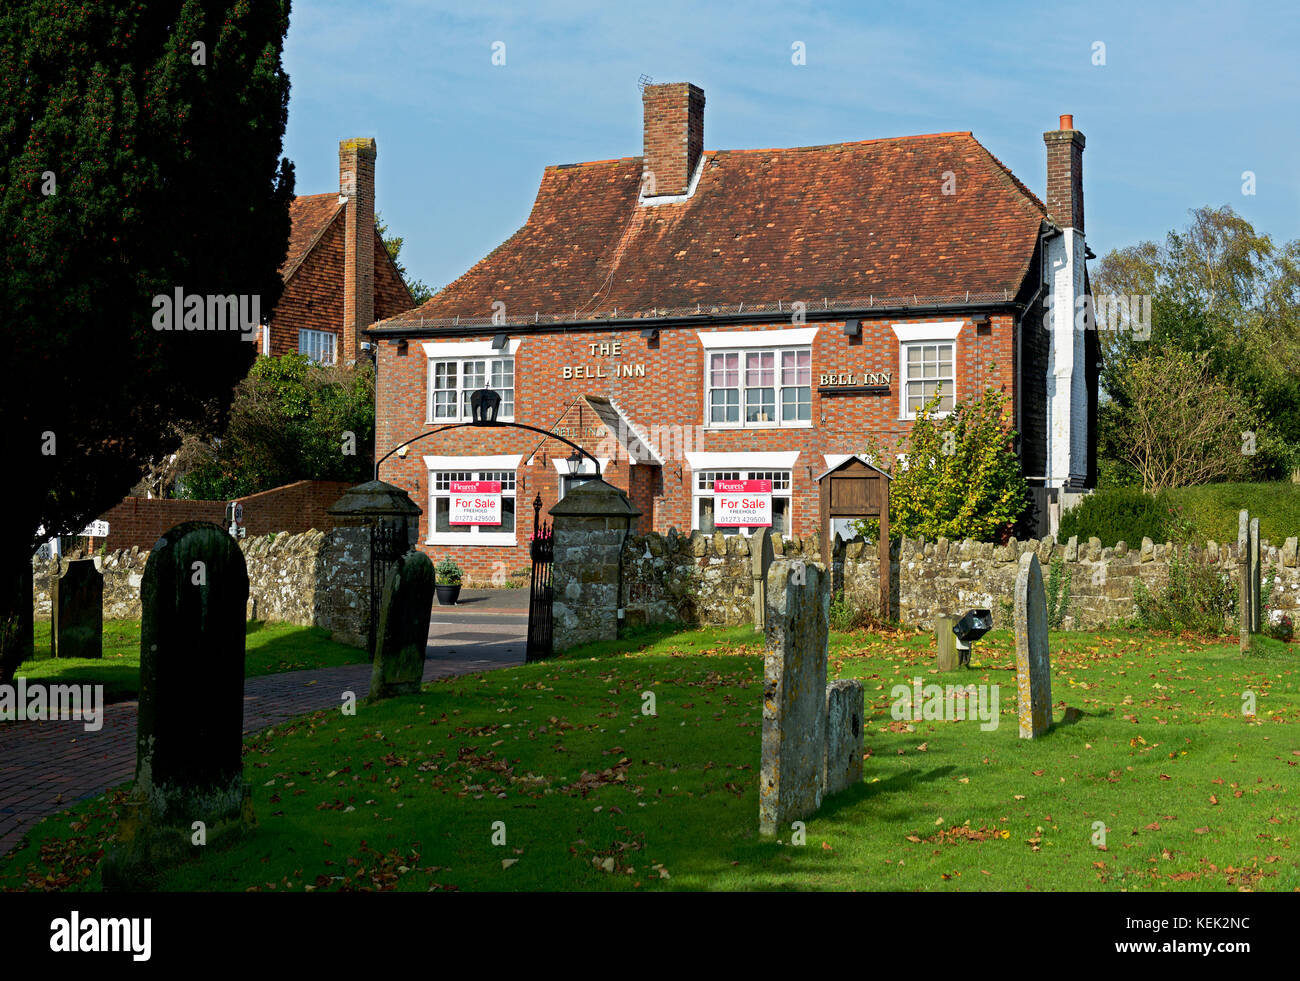 The Bell pub - up for sale - in the village of Burwash, Sussex, England UK - Stock Image